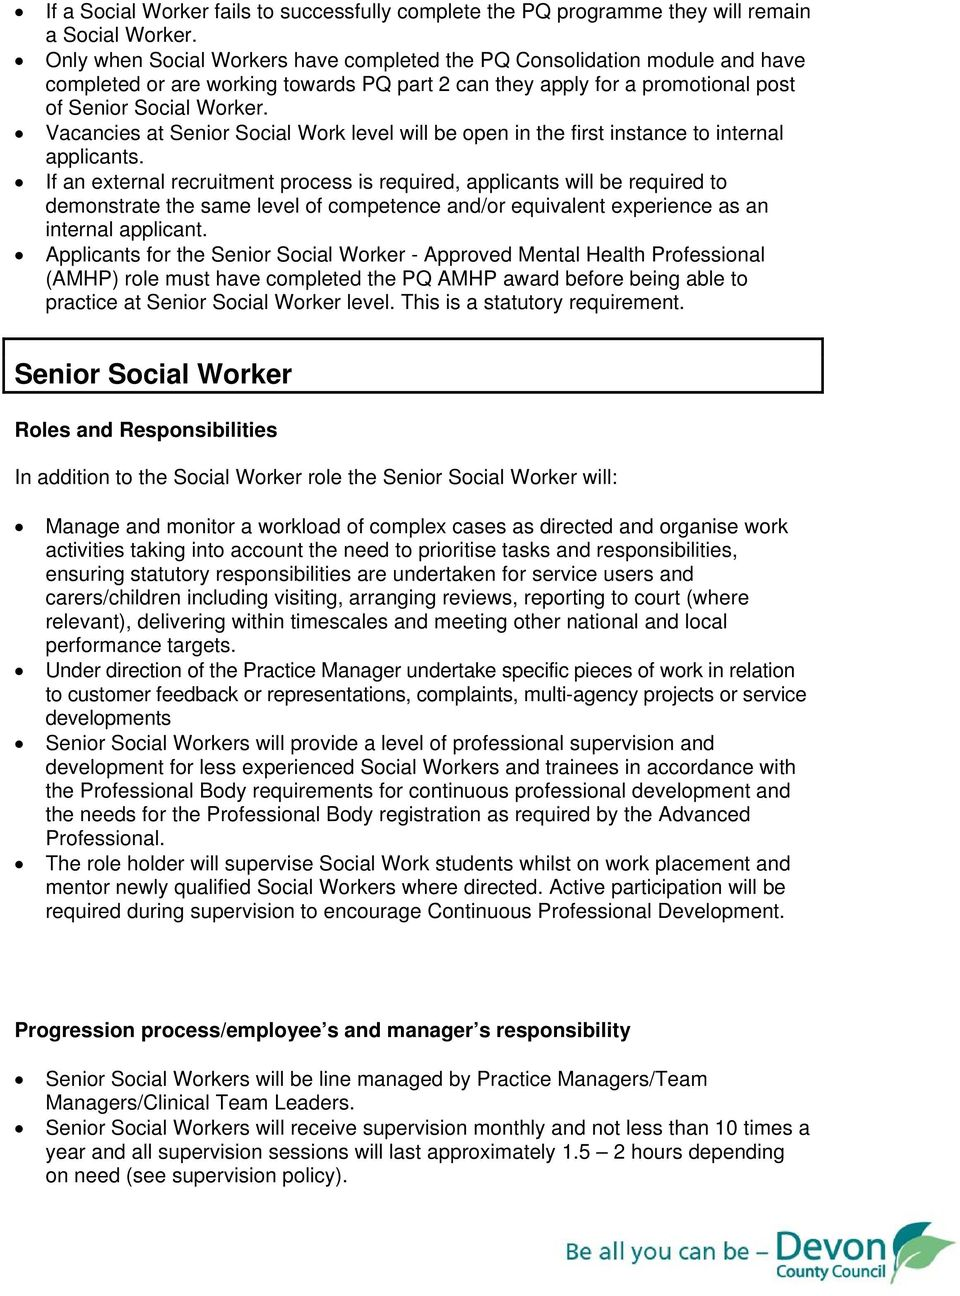 Vacancies at Senior Social Work level will be open in the first instance to internal applicants.